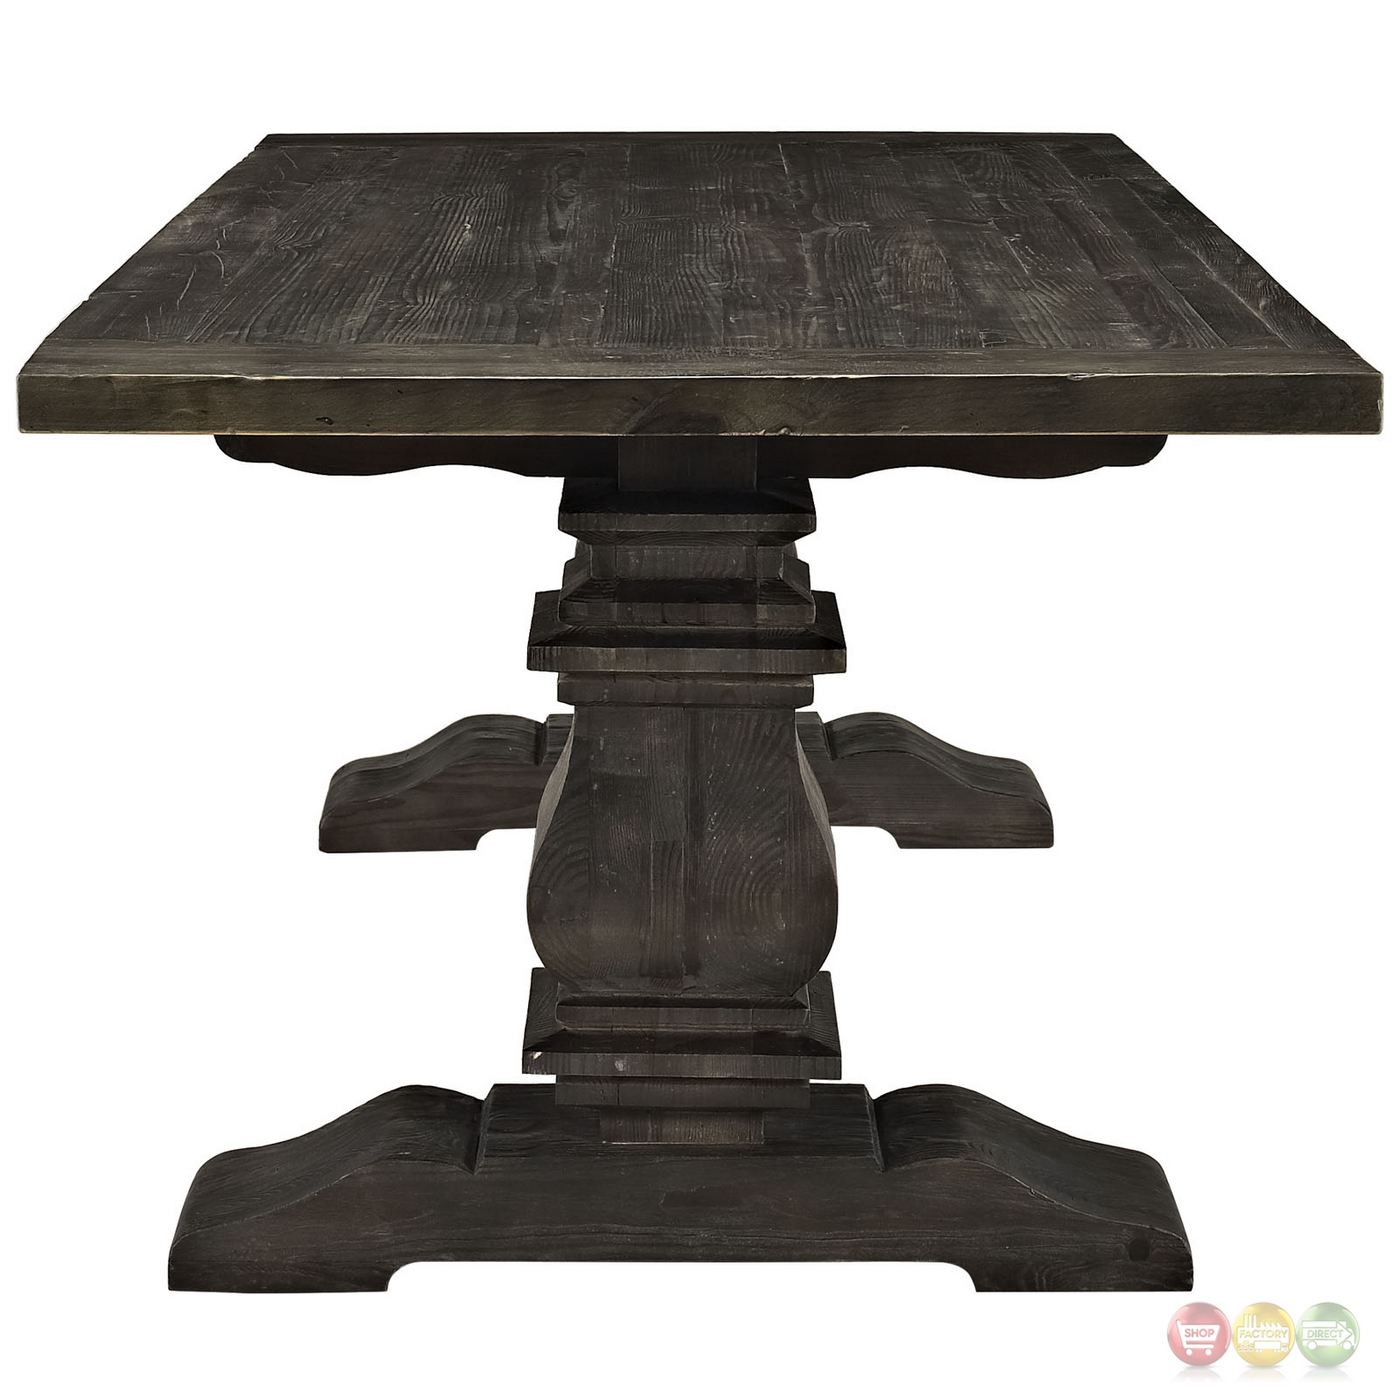 Column modern rustic 79 solid pine wood dining table black for Black wood dining table